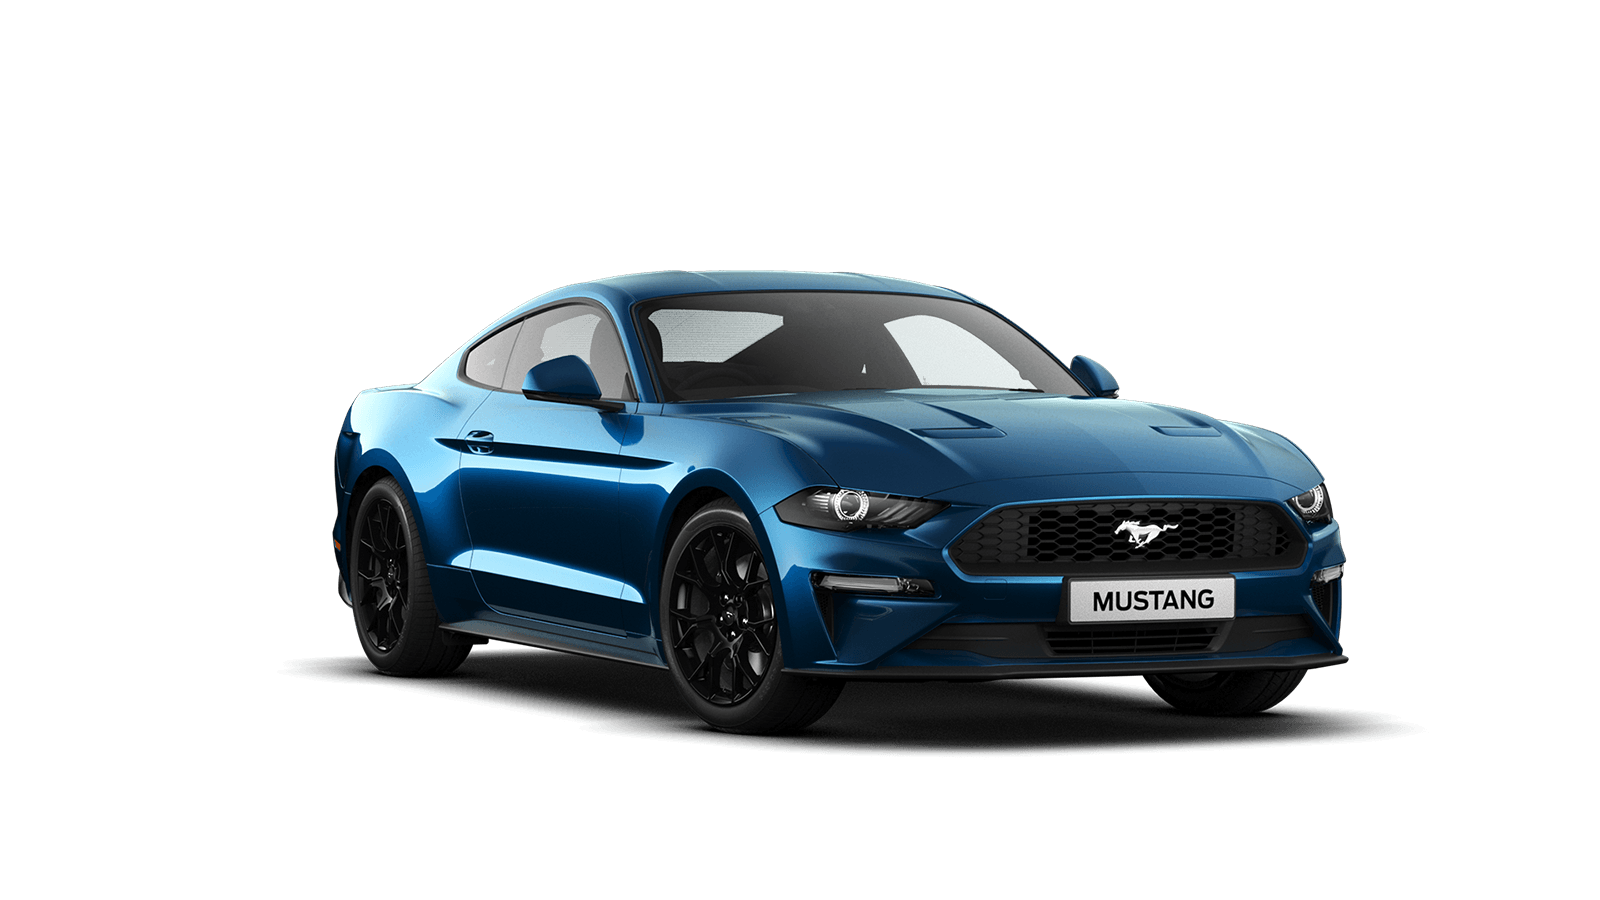 https://www.dealerinternet.co.uk/images/MUSTANG/2019/Fastback/2.3EcoBoost/VELOCITY-BLUE.png